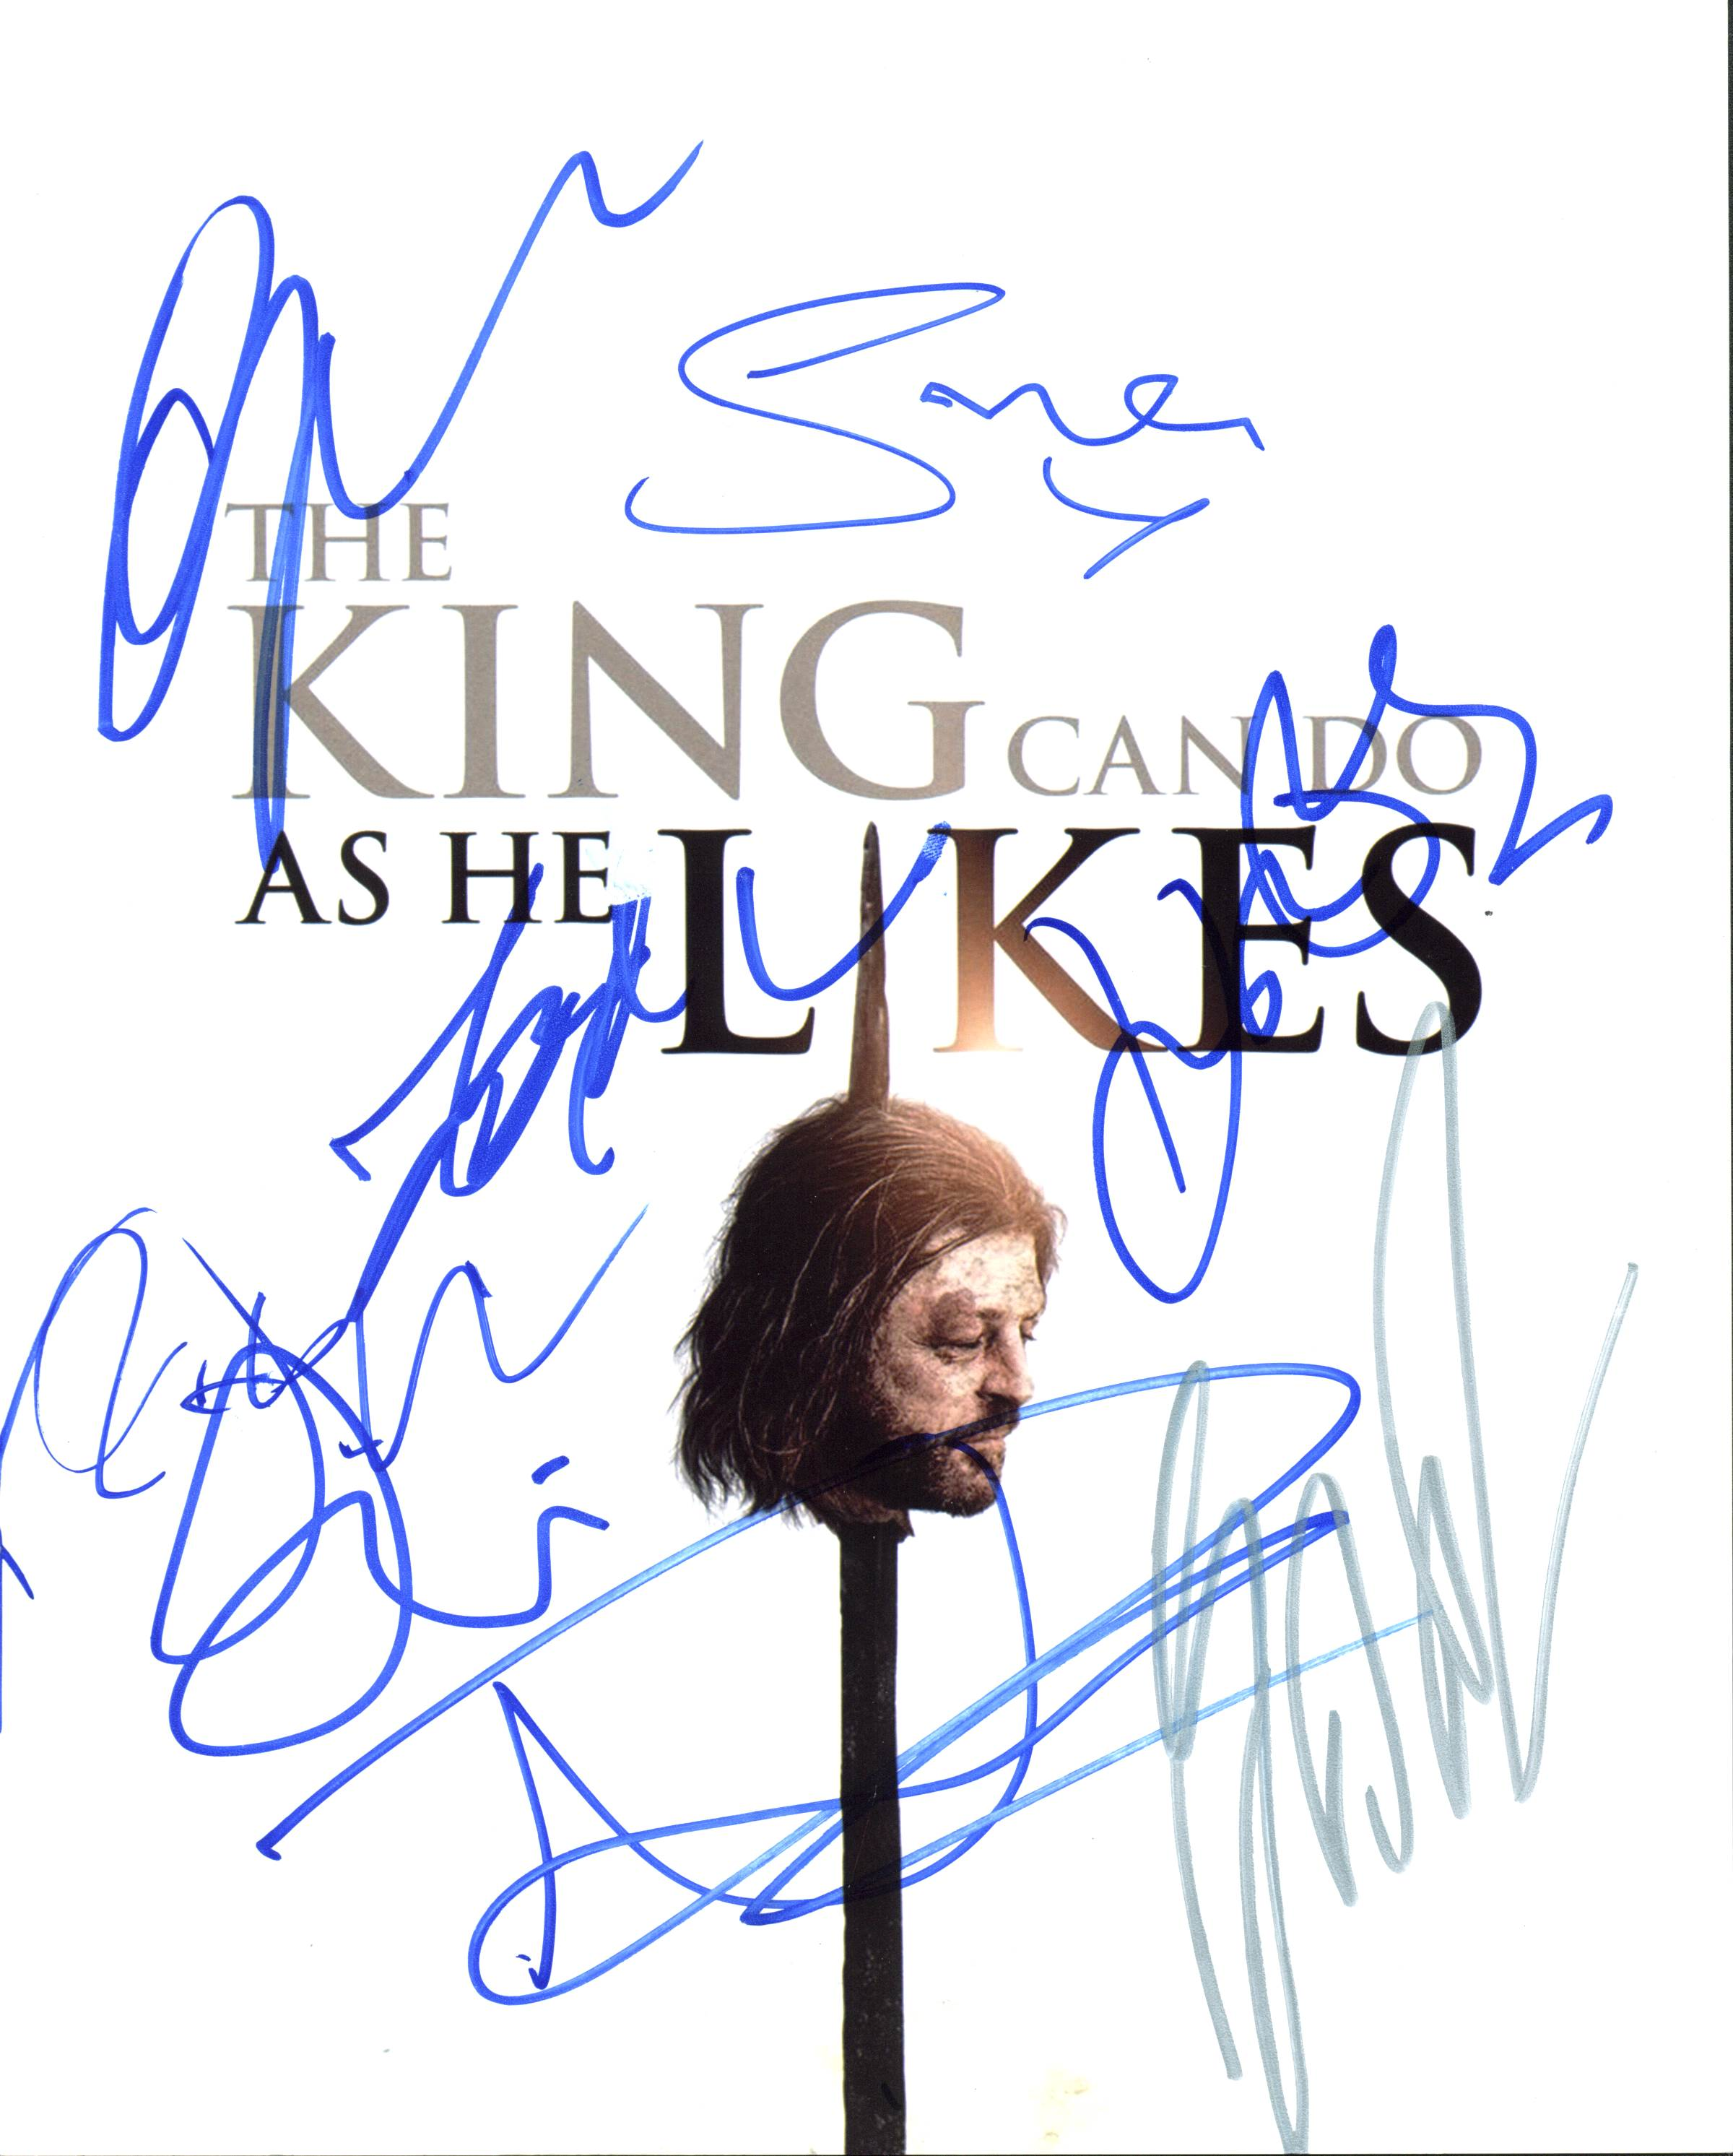 Game Of Thrones (George R.R. Martin + 7) Authentic Signed 8X10 Photo BAS #A10267